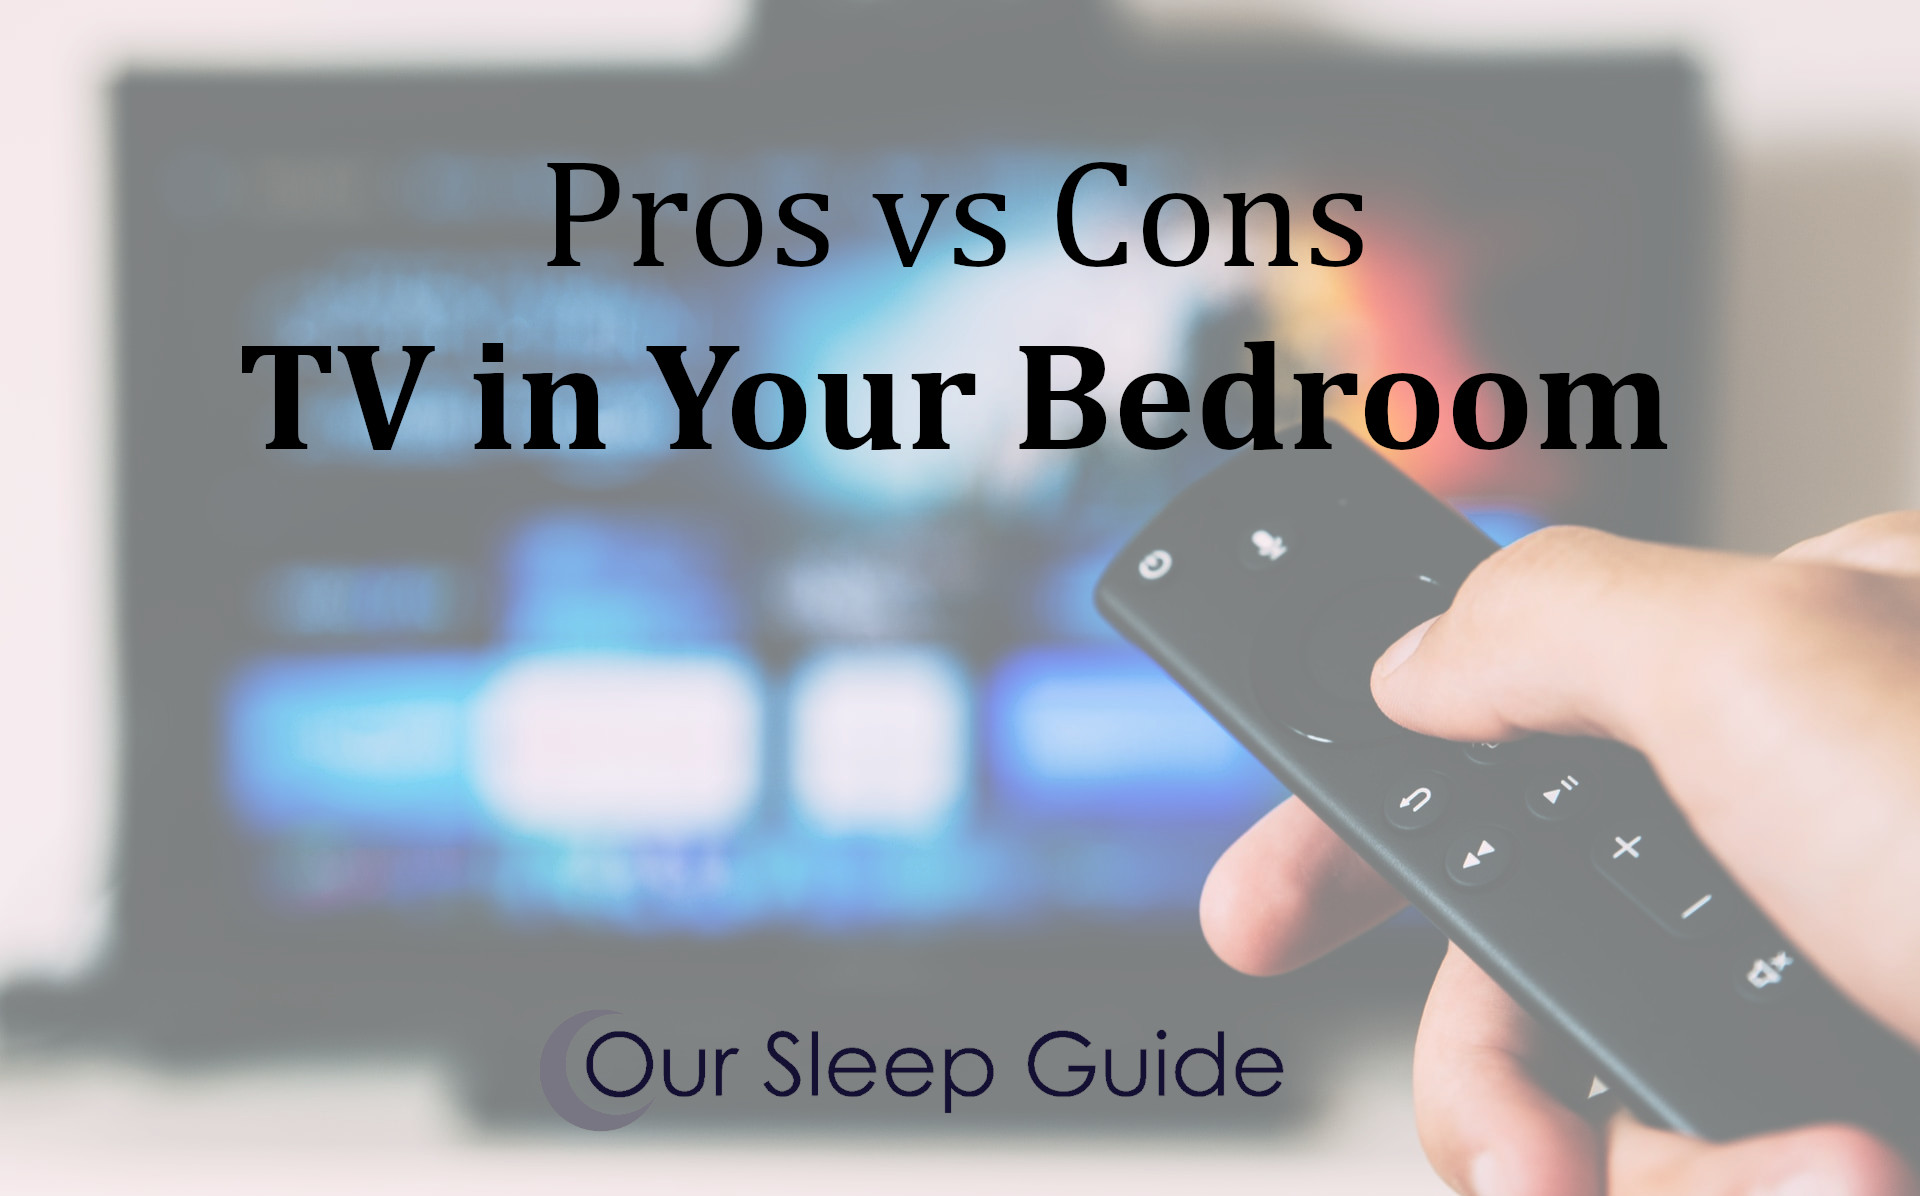 pros vs cons tv in your bedroom